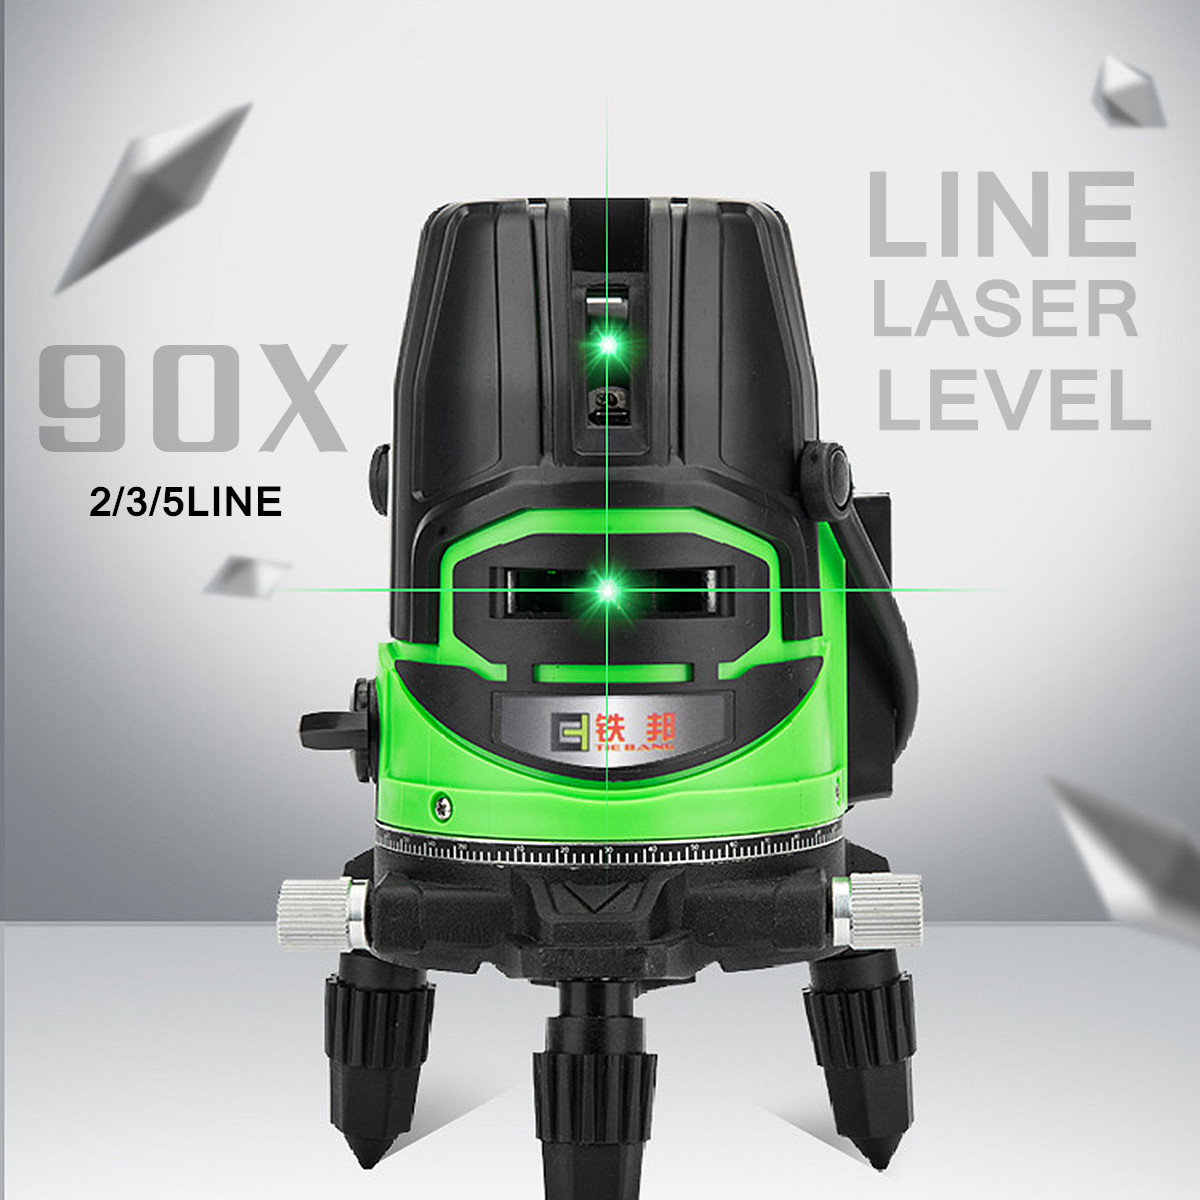 2/3/5 Line Four-button Screen Green Light Line Laser Level Automatic Self Leveling Mechanism Thickened Metal Base Shatter-proof настенное бра silverlight 726 48 1